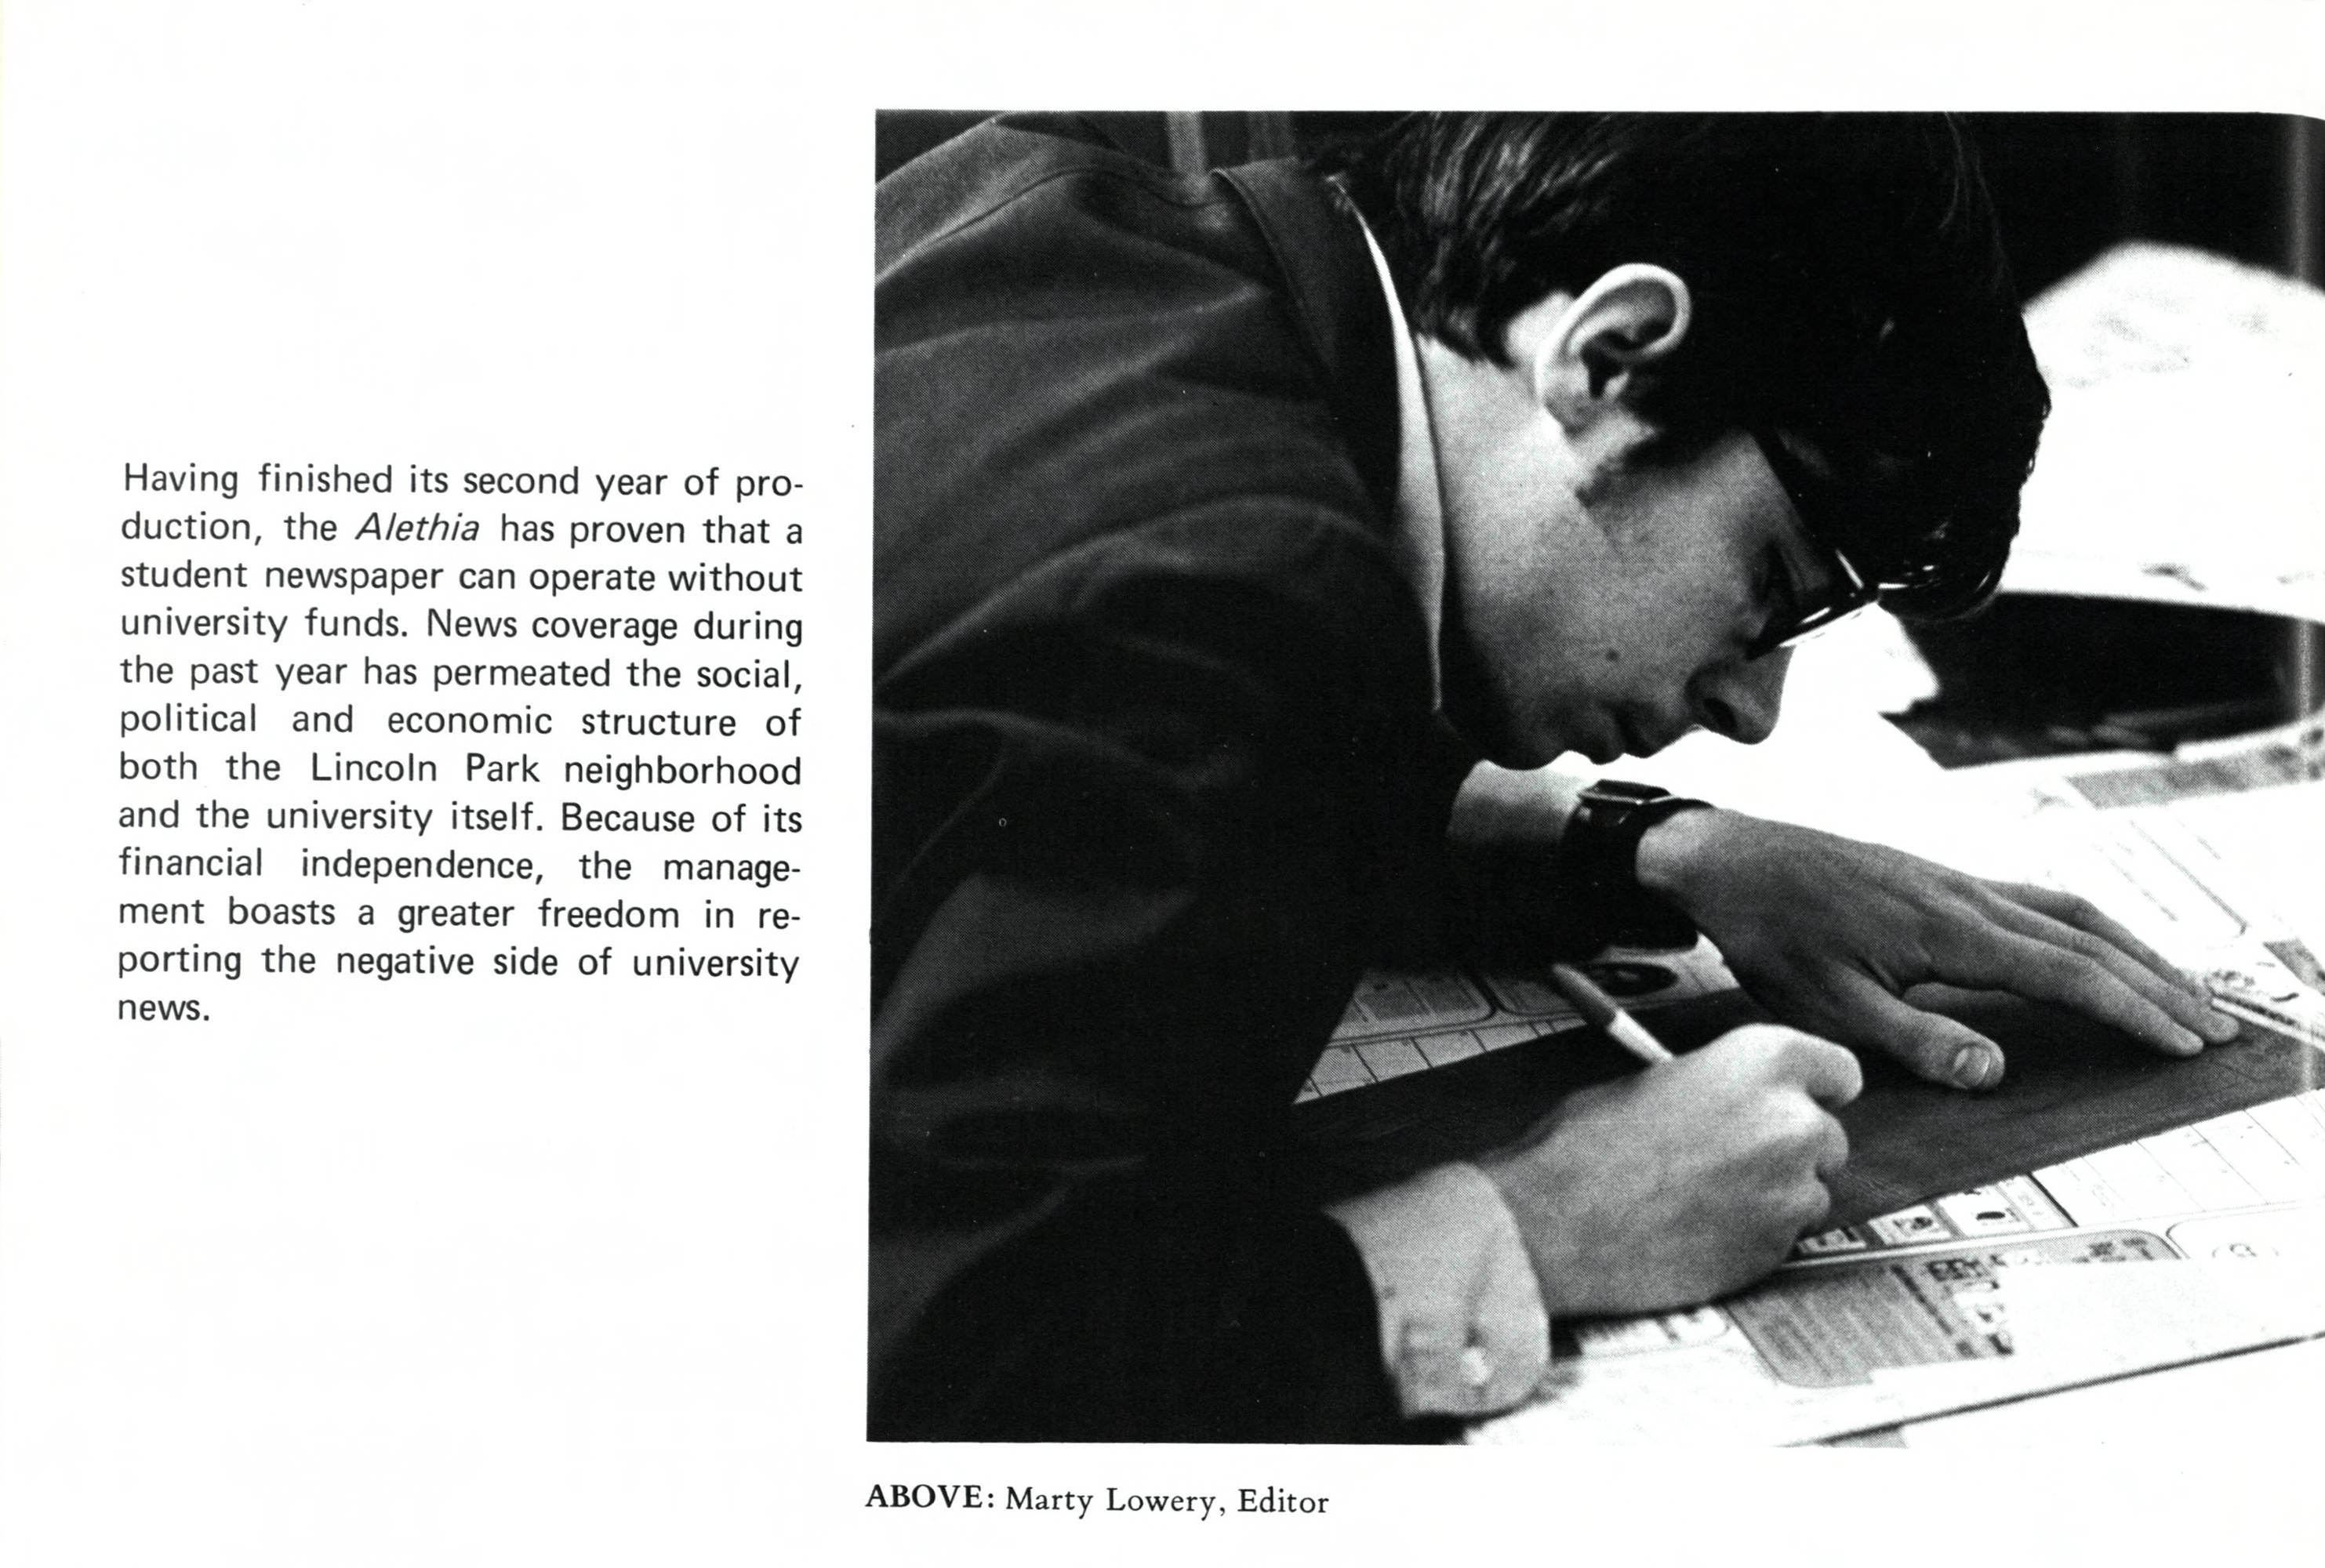 Martin Lowery works on an upcoming issue of The Aletheia (courtesy of the DePaul Richardson Library Digital Collections)